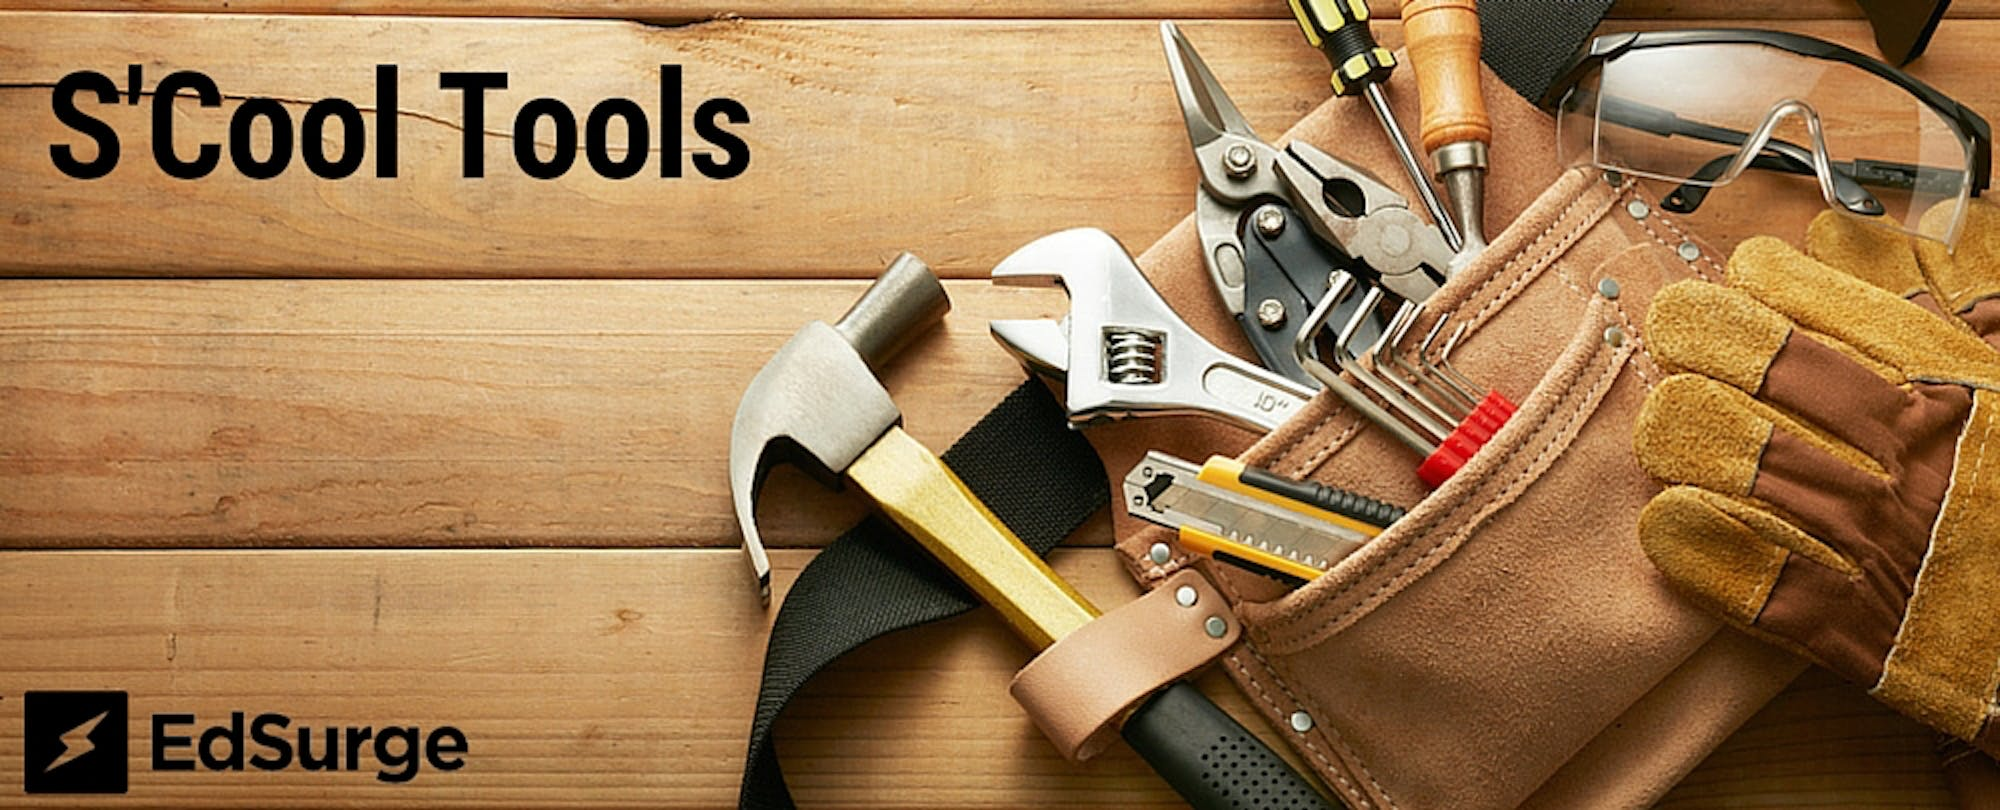 S'Cool Tools Reviewed by an Educator: Learn With Homer, Dreambox Learning